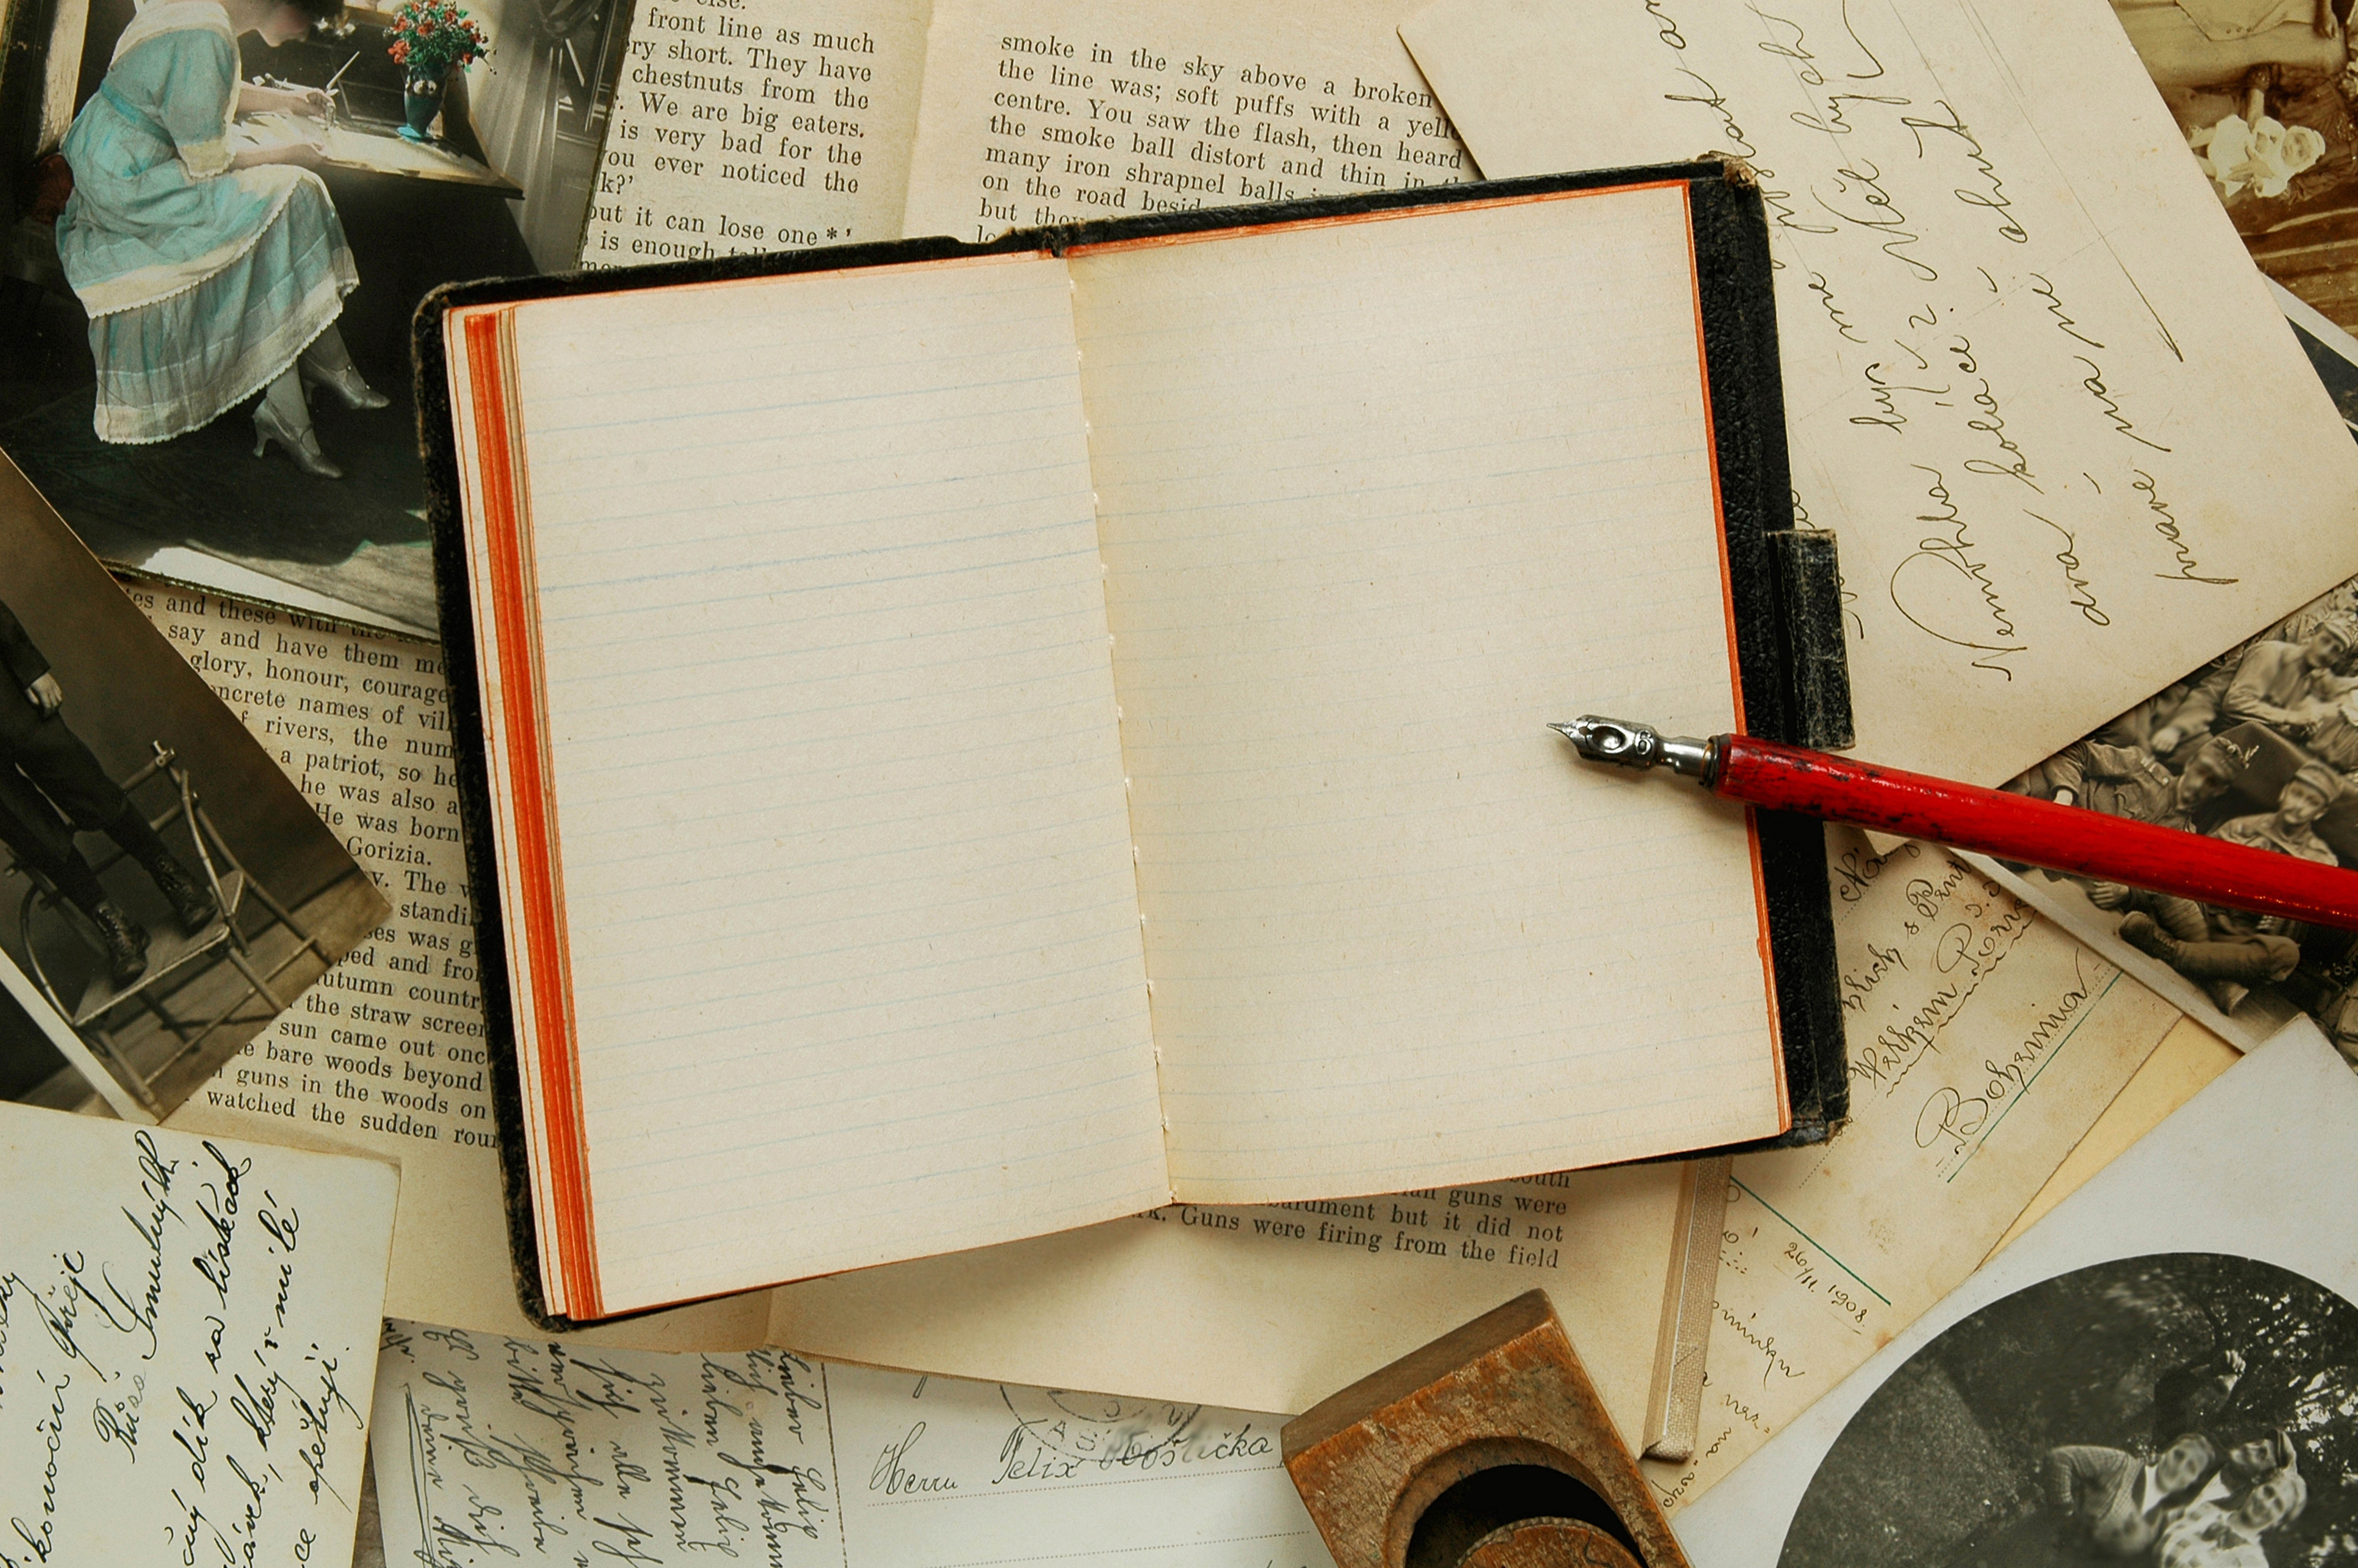 82684 download wallpaper Miscellanea, Miscellaneous, Old, Table, Letters, Notebook, Notepad, Pen, Emptiness, Void screensavers and pictures for free